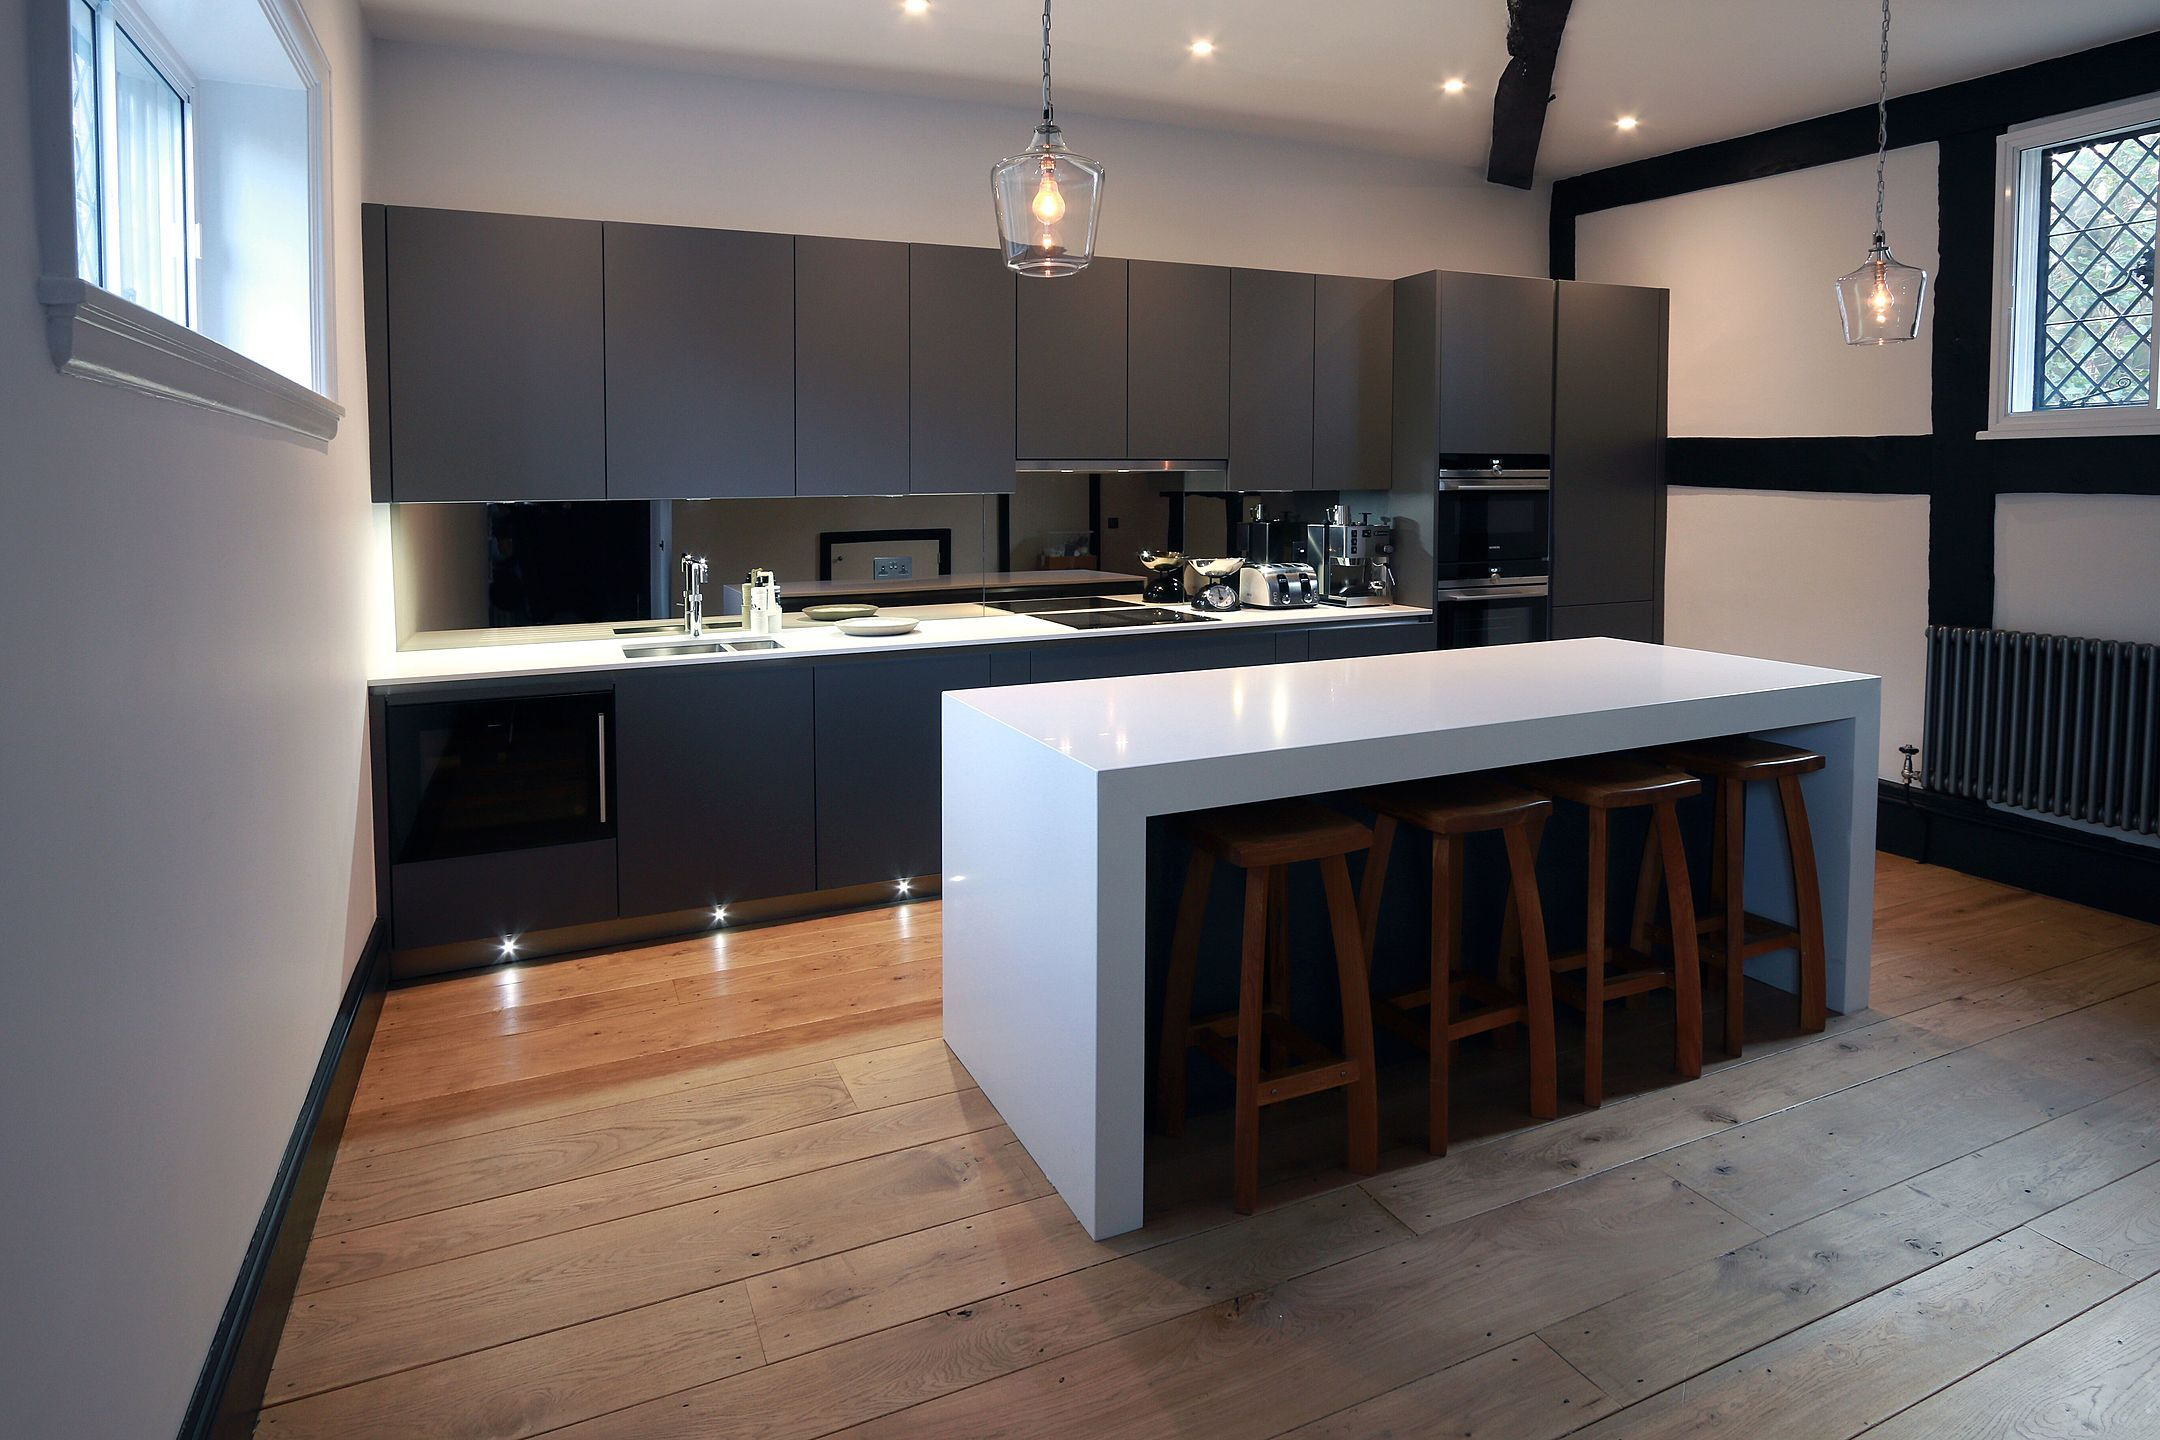 This modern grey kitchen works so well with the chunky